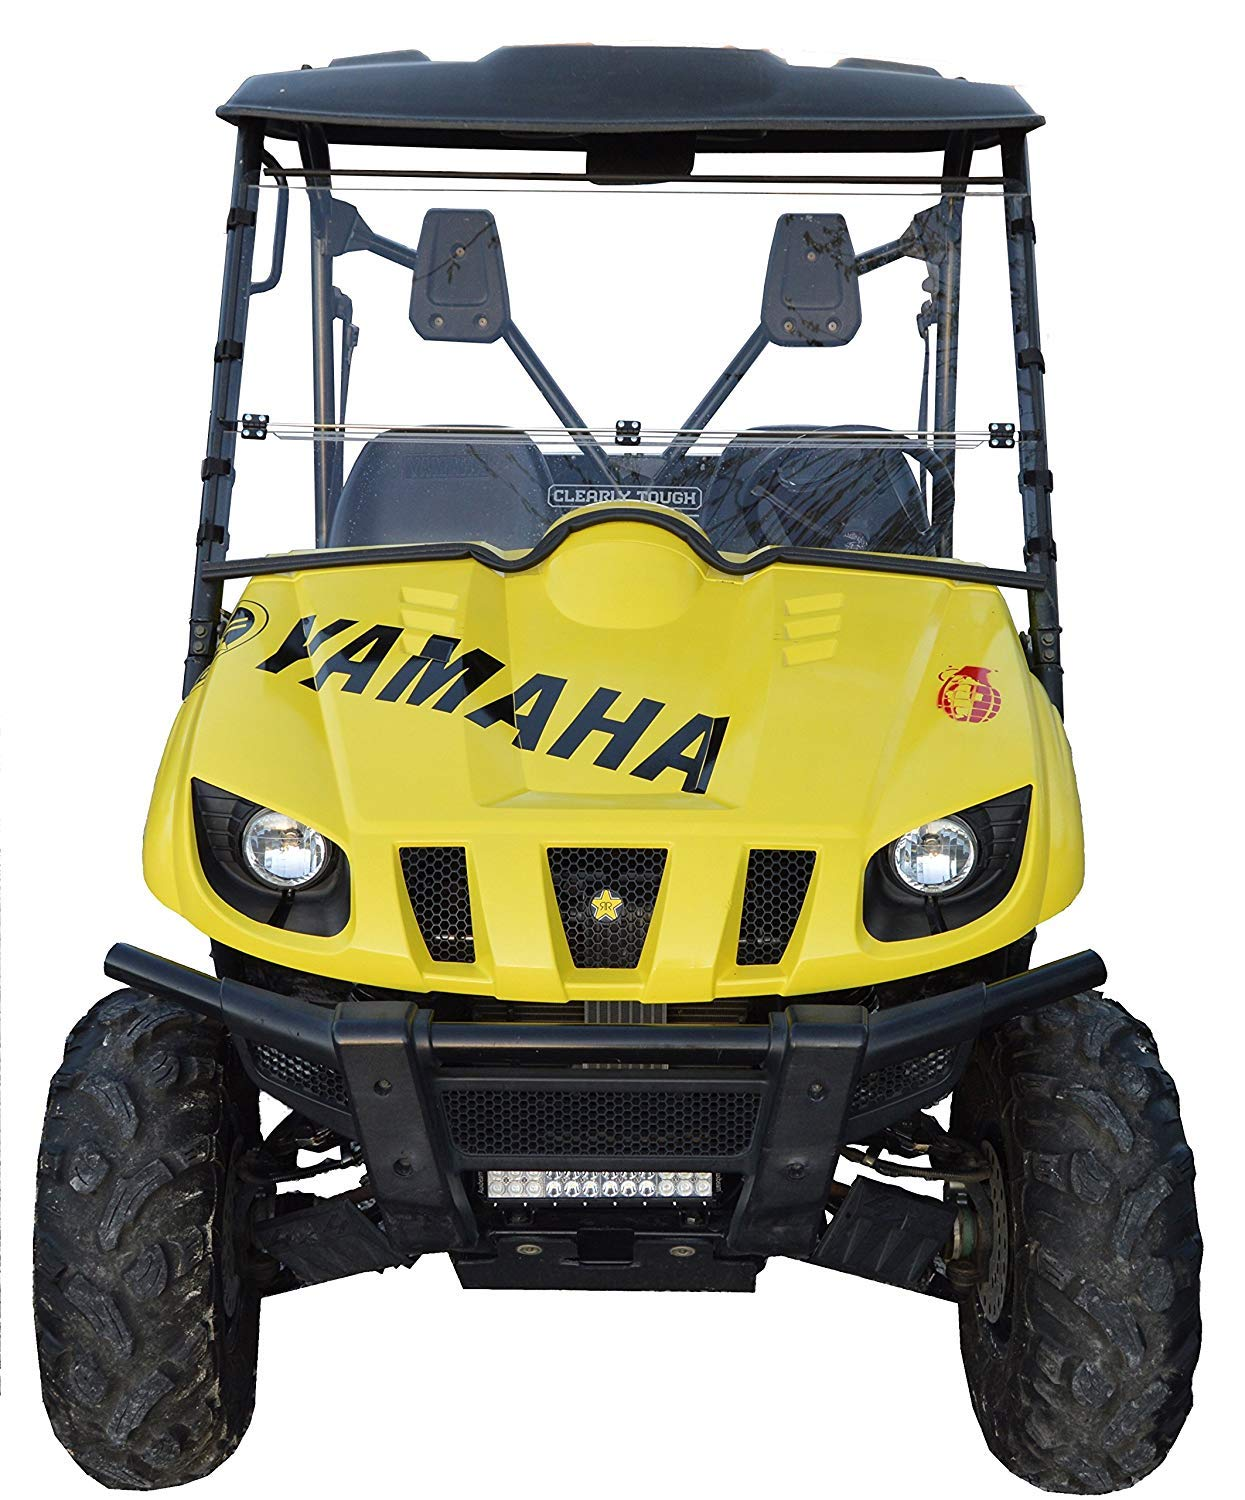 Yamaha Side By Side >> Clearly Tough Yamaha Rhino Windshield Full Folding Scratch Resistant The Ultimate In Side By Side Versatility Premium Polycarbonate W Hard